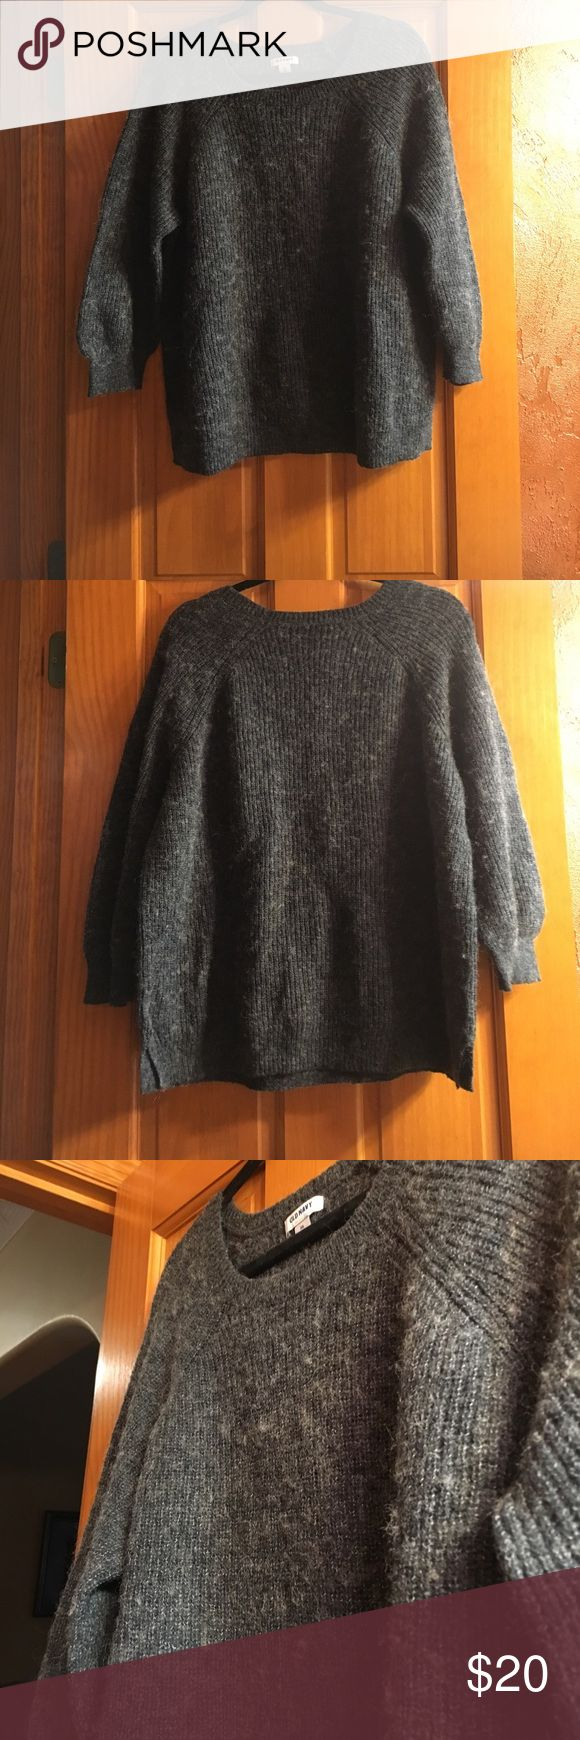 Gray Old Navy Sweater Gray Old Navy Sweater! Size: XXL {51% Acrylic, 25% Wool,& 24% Nylon} Great Condition! Super cute for fall and winter! ☃️🍂 Old Navy Sweaters Crew & Scoop Necks